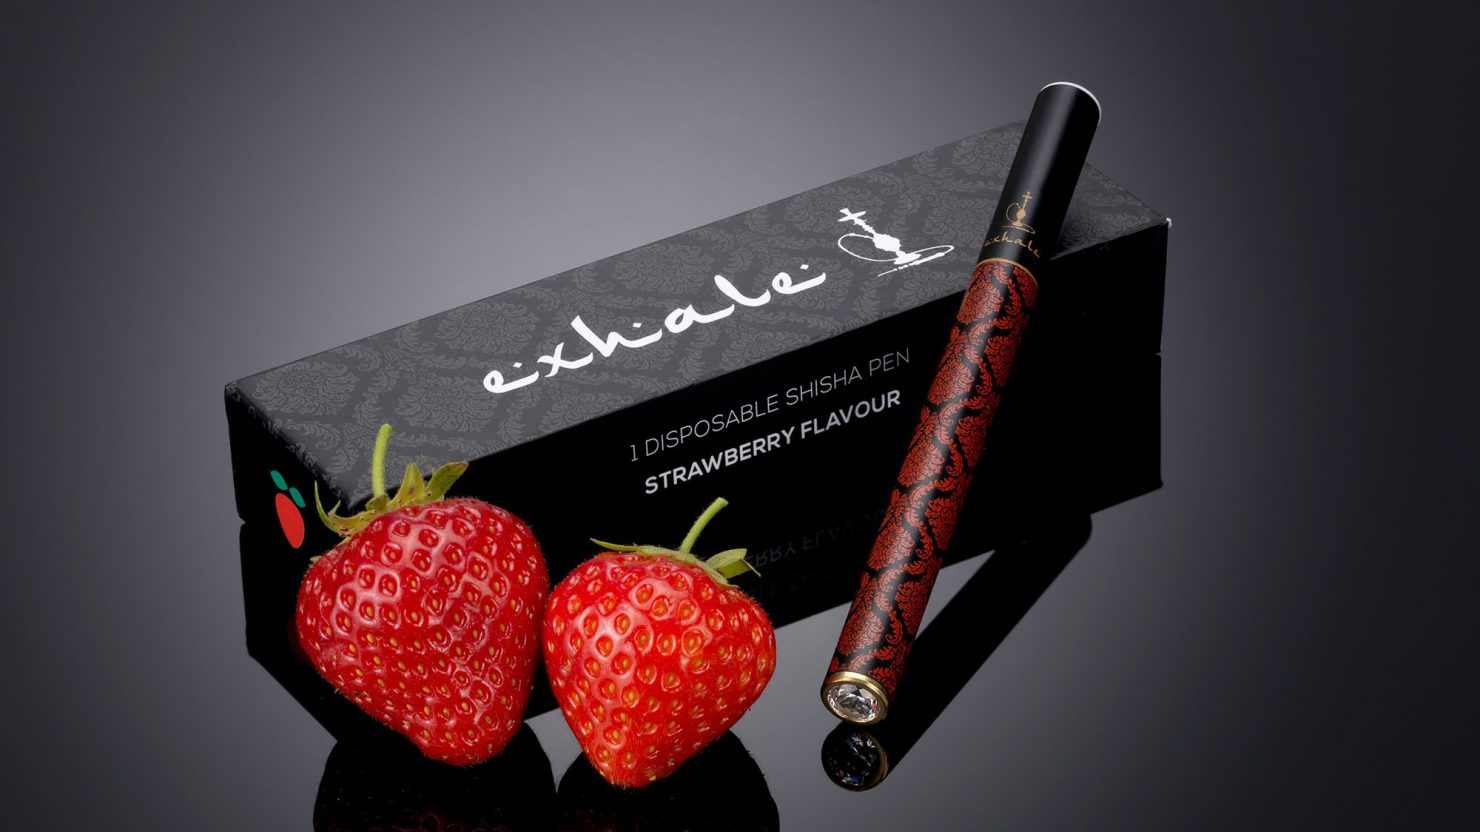 packaging design and branding for exhale shisha pens strawberry